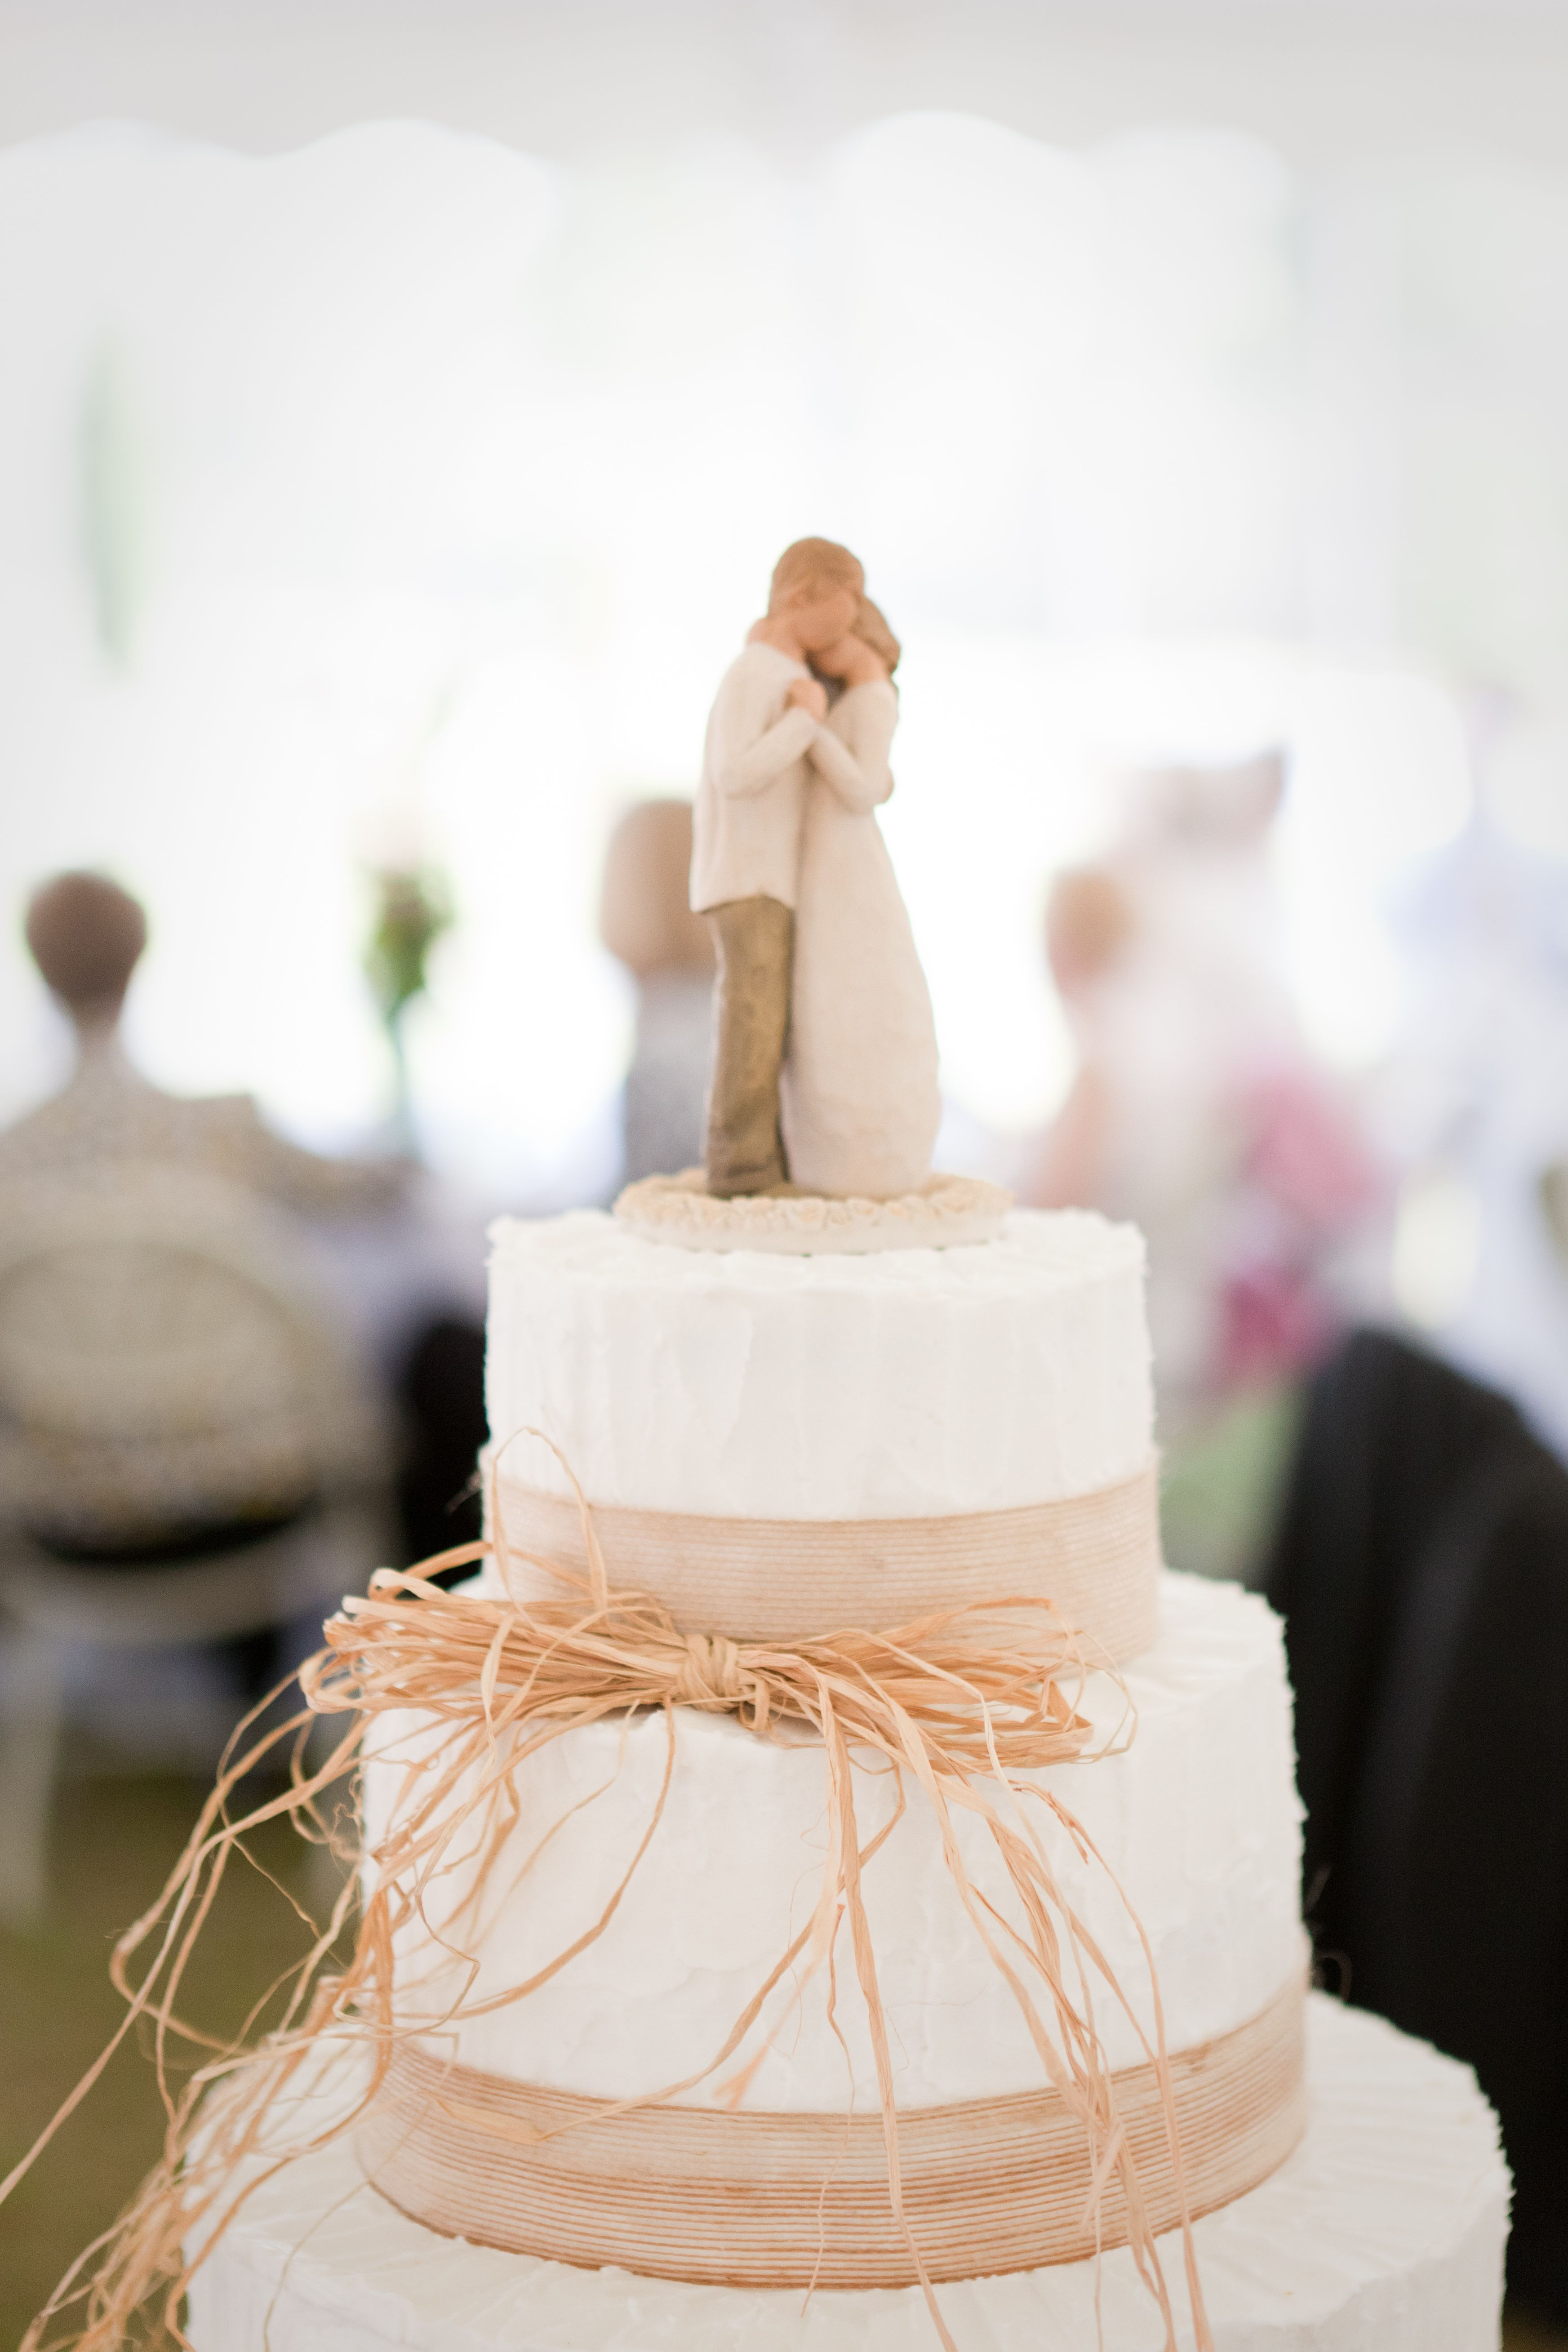 Simple Wedding Cake...LOVE The Willow Tree Figurine As The Cake Topper.